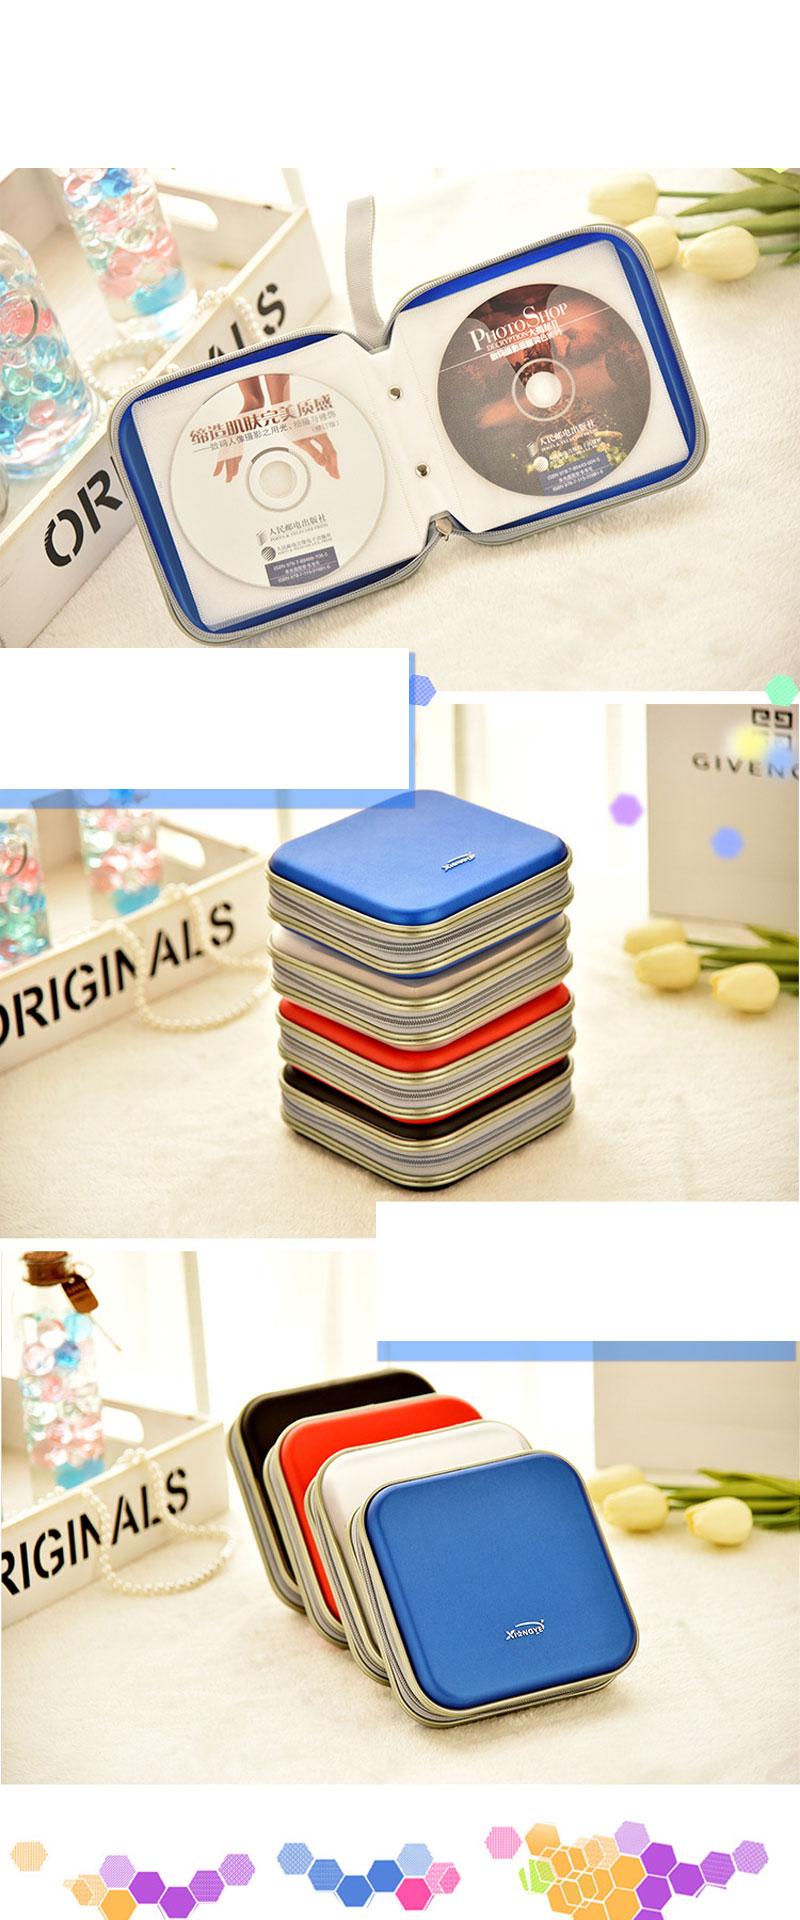 RACAHOO-CD-Case-High-Quality-Waterproof-Compression-CD-Package-40-Disc-Capacity-For-Home-Office-And-Car-Storage-CD-Bag3